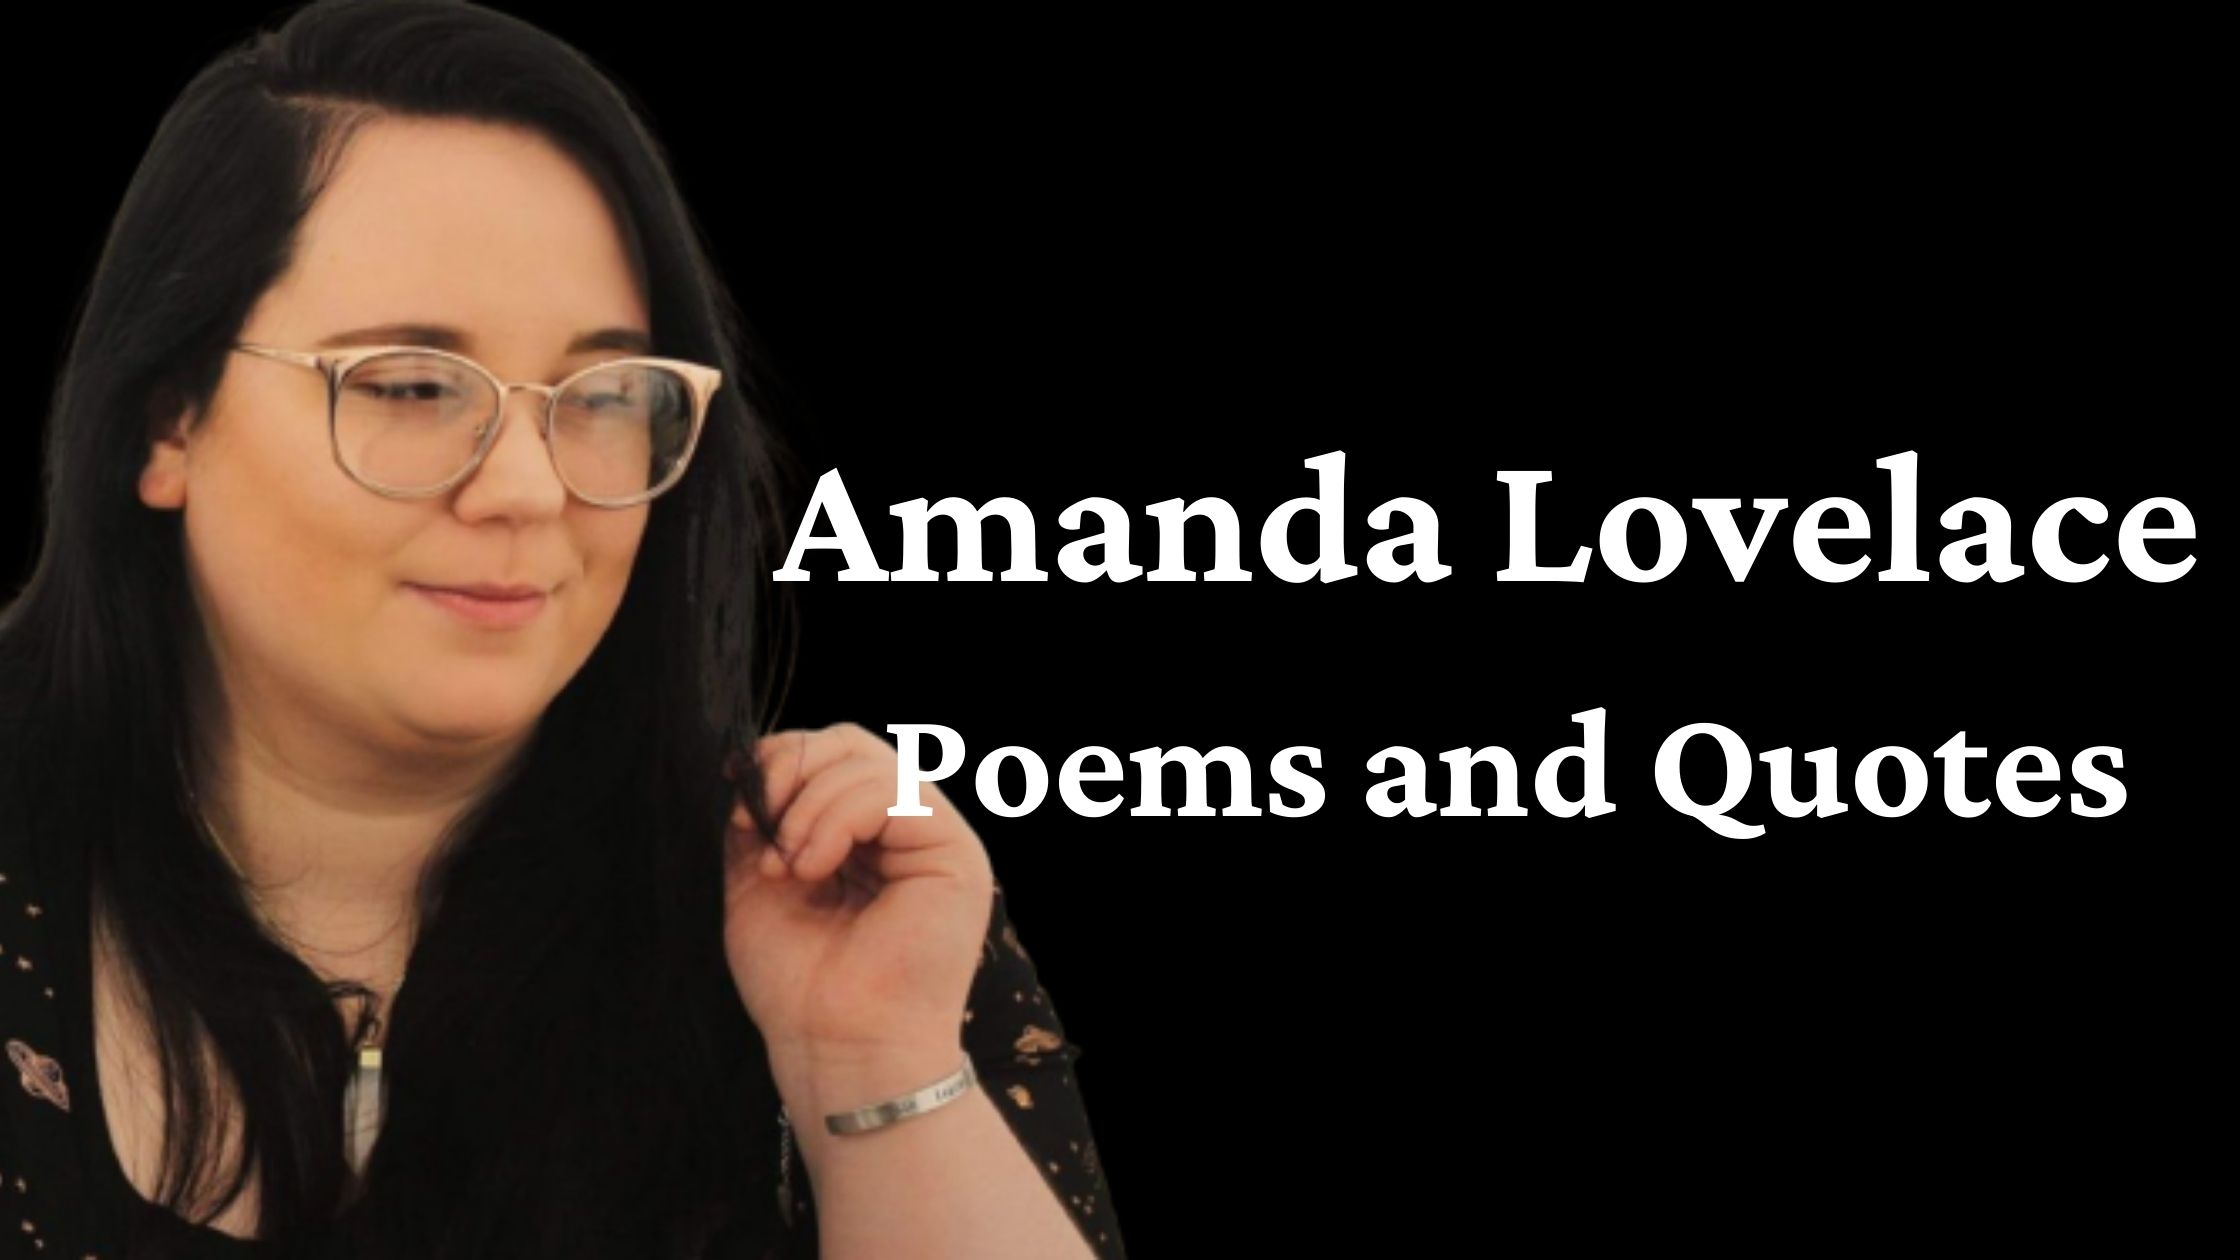 Best Amanda Lovelace Poems and Quotes